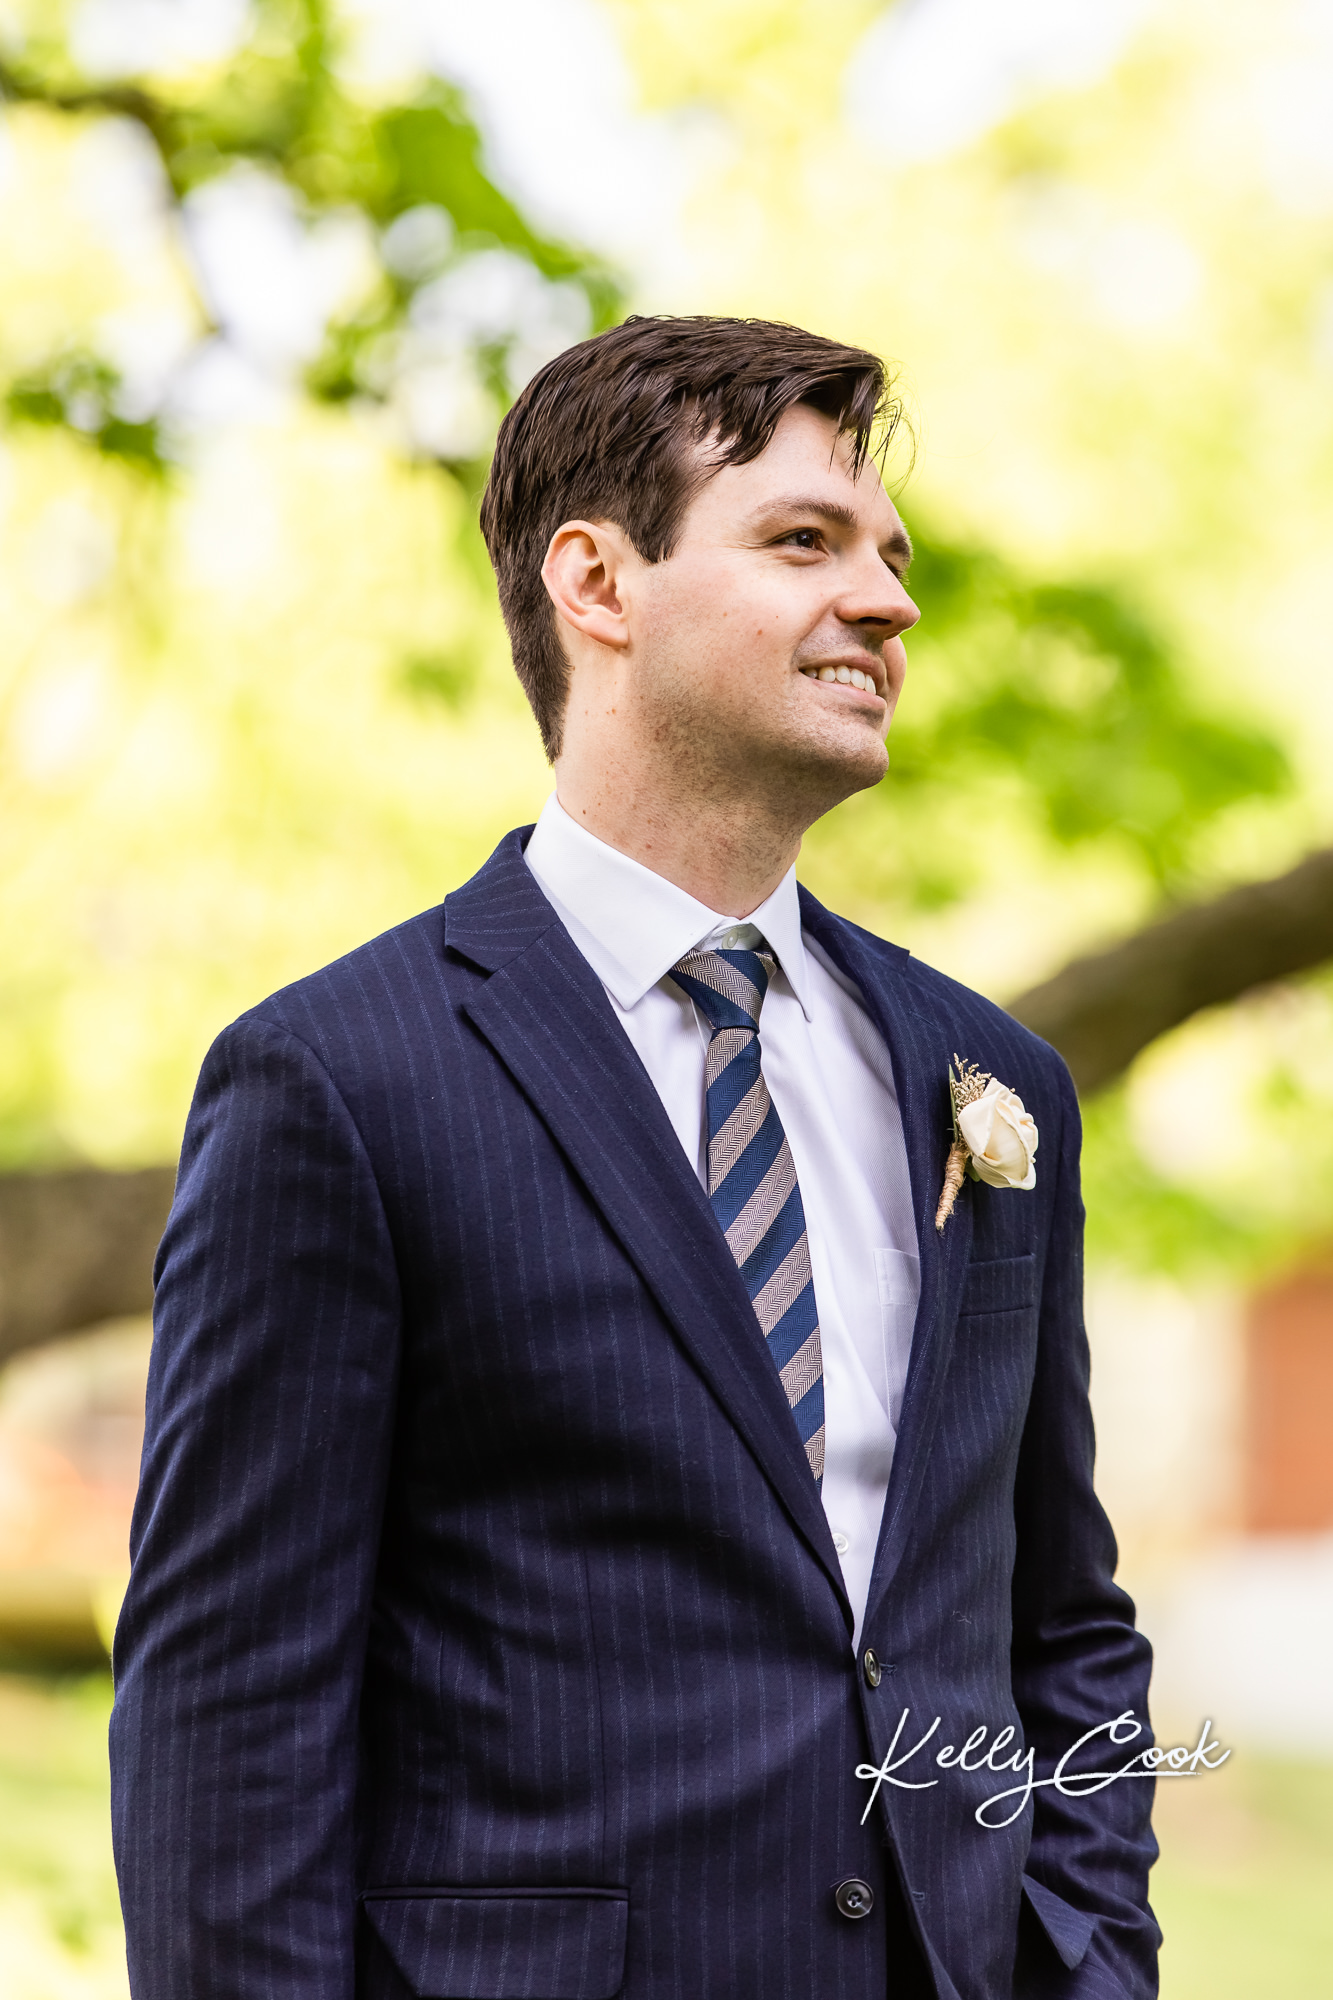 Portrait of a groom watching his bride walk down the aisle